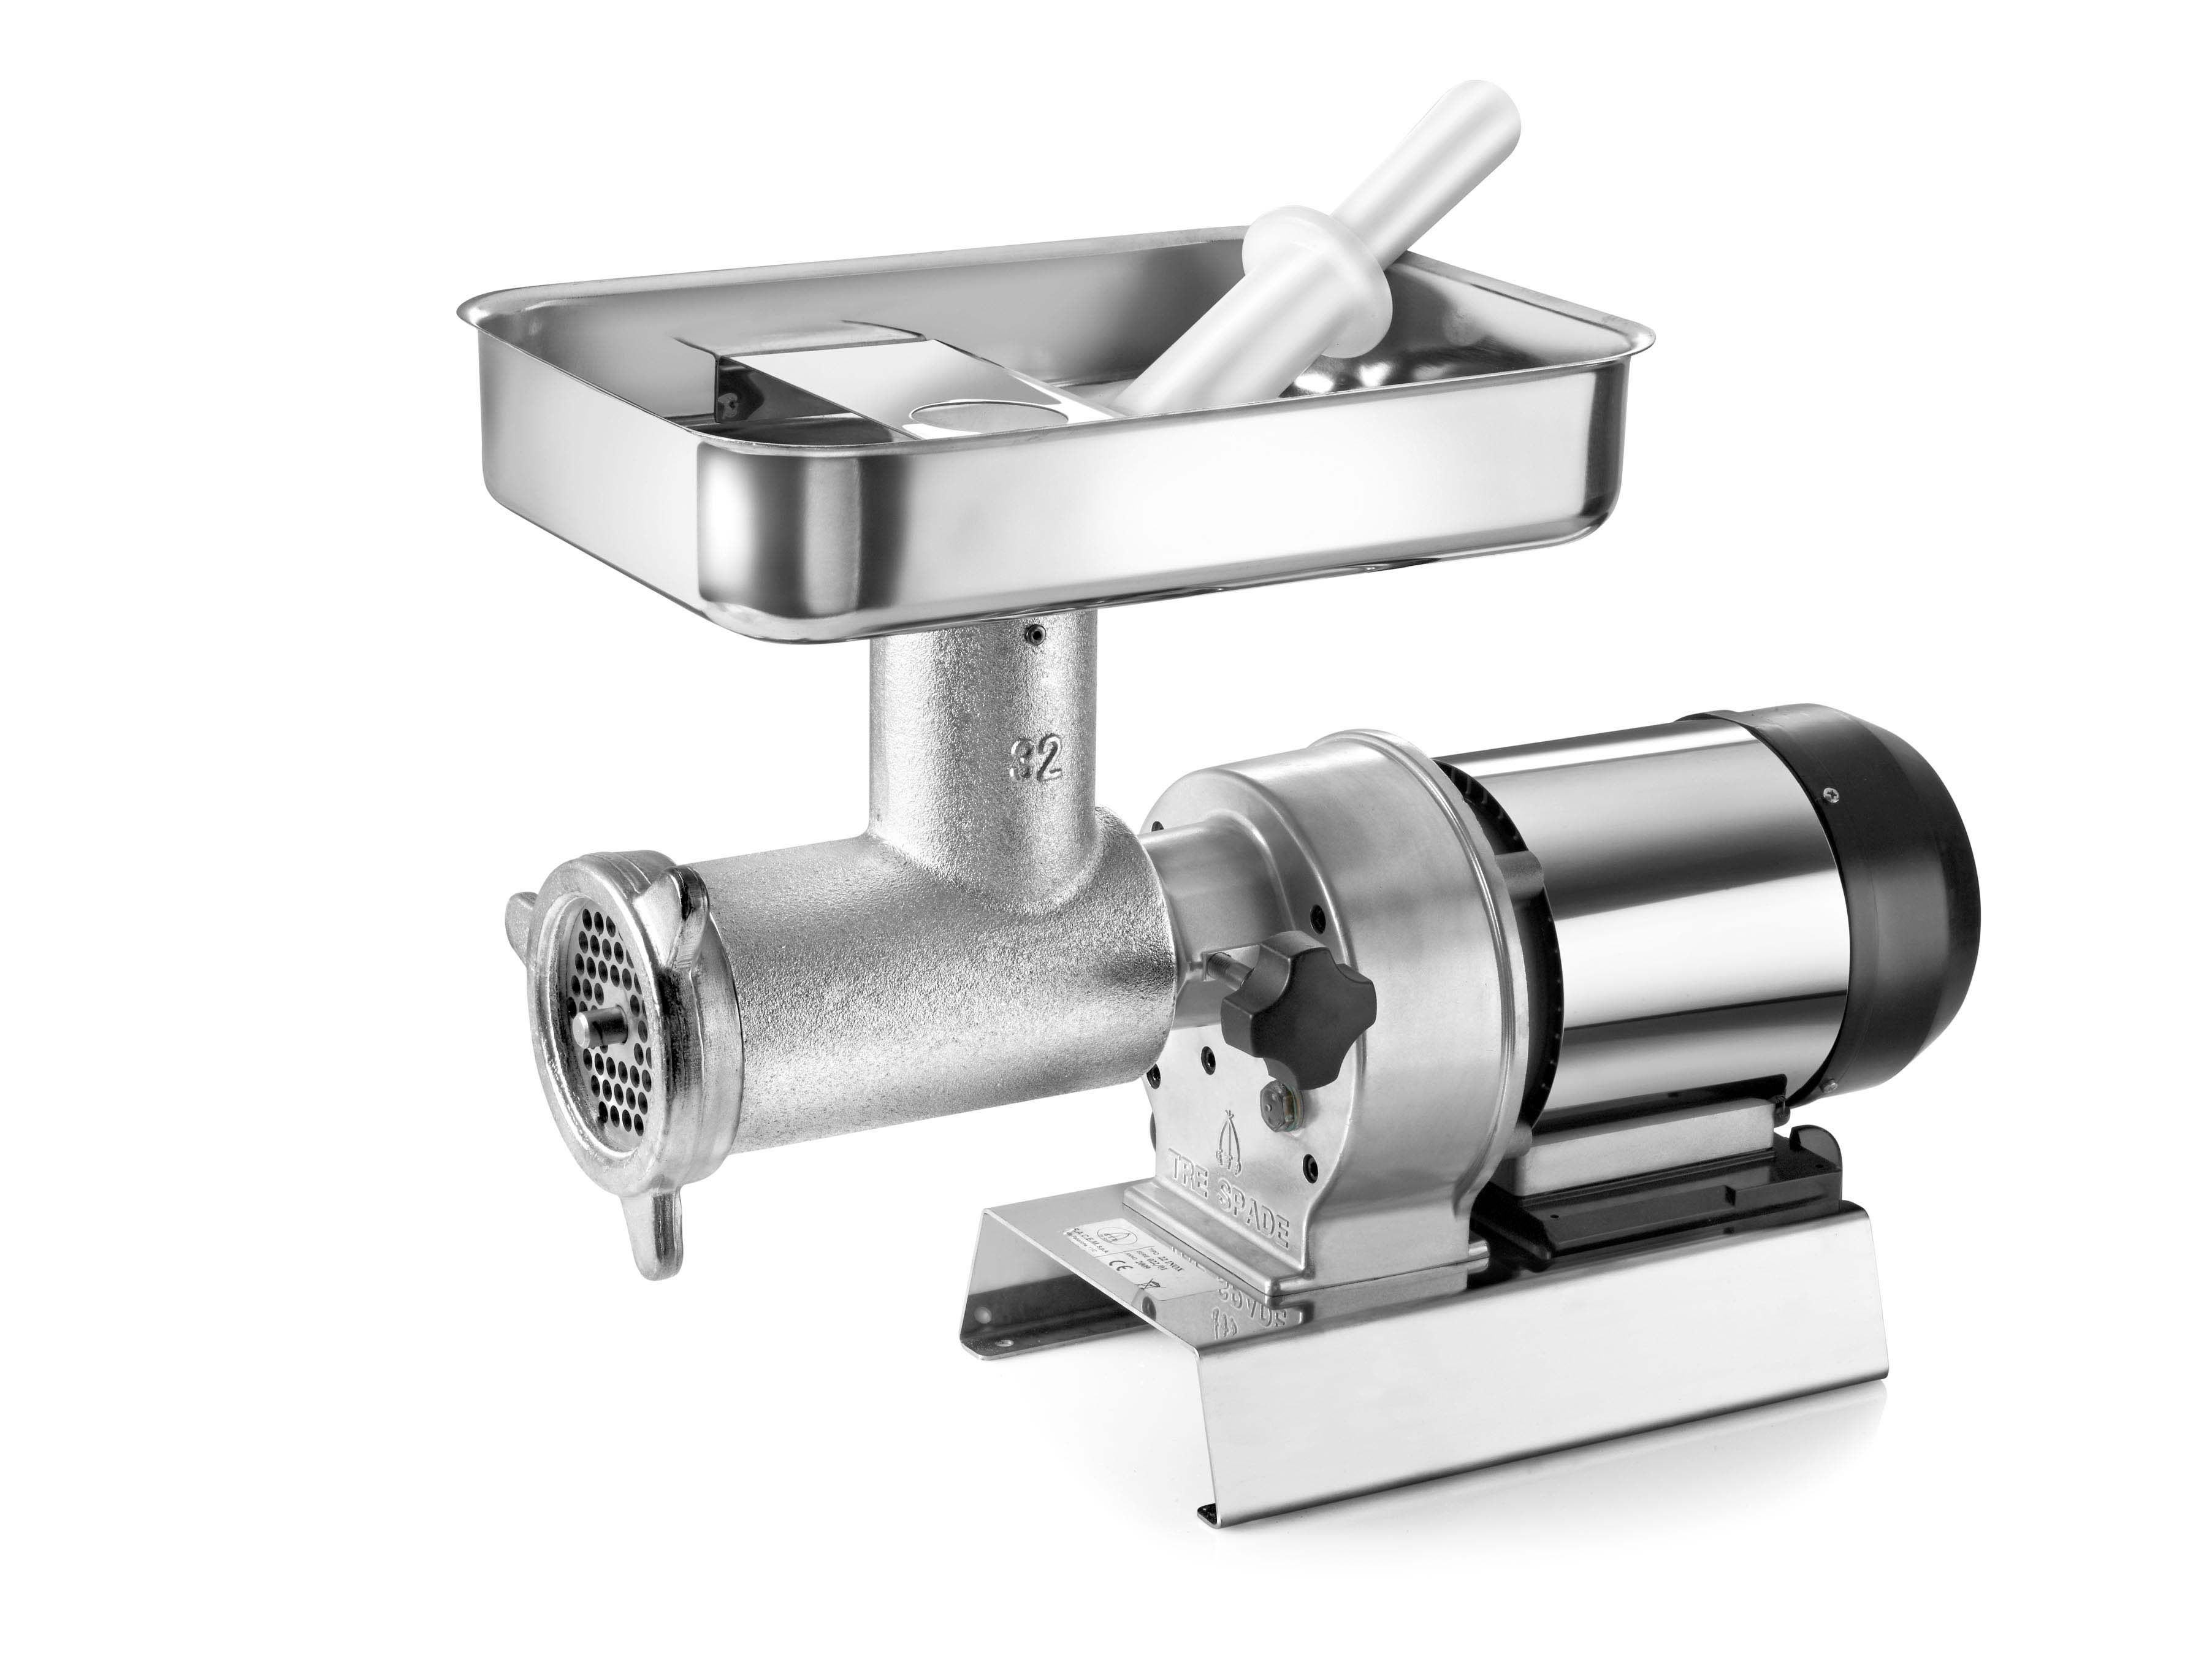 mnt0032--mincer-trespade-professional--no32